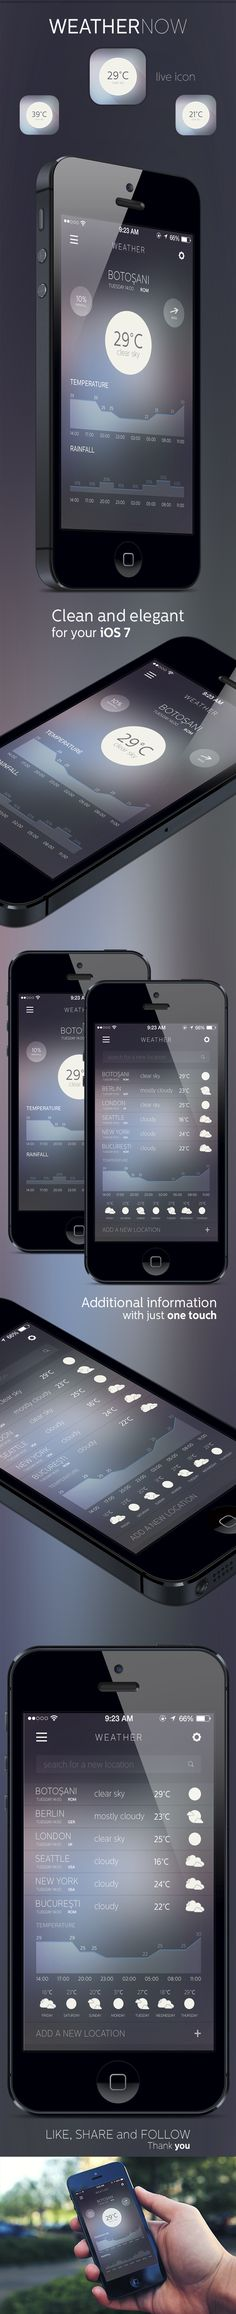 WEATHER NOW by Alexandru Stoica, via Behance